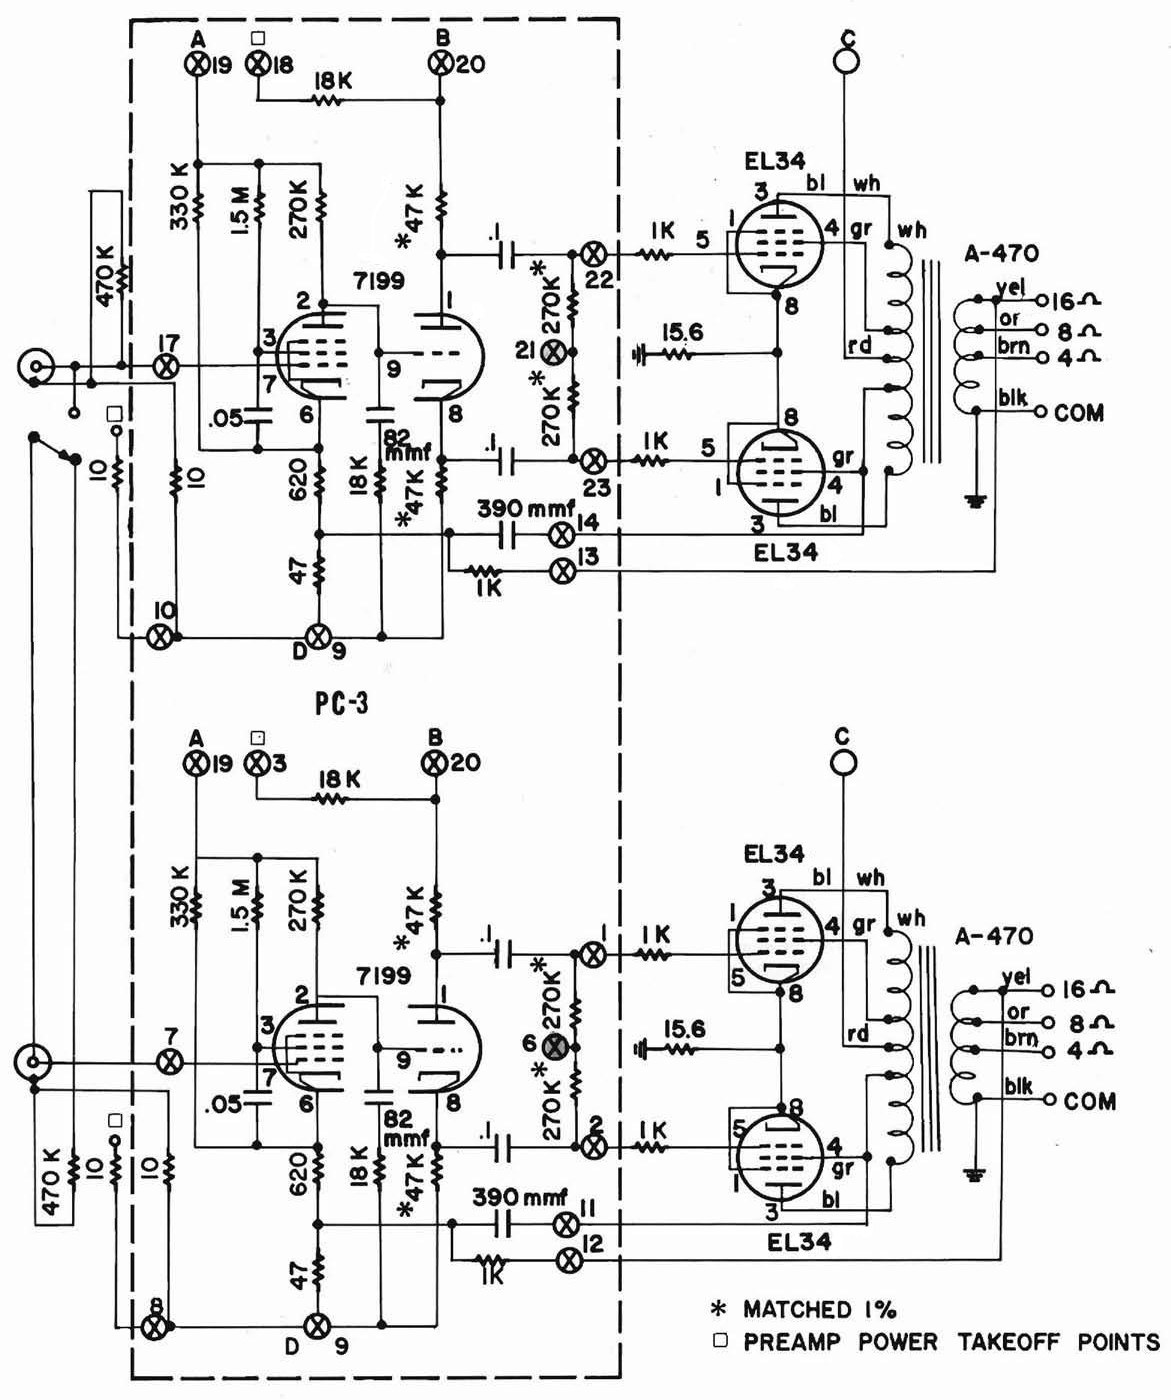 dynaco_st70_amp_schematic vaa mkii amp dynaco st70 wiring diagram at reclaimingppi.co